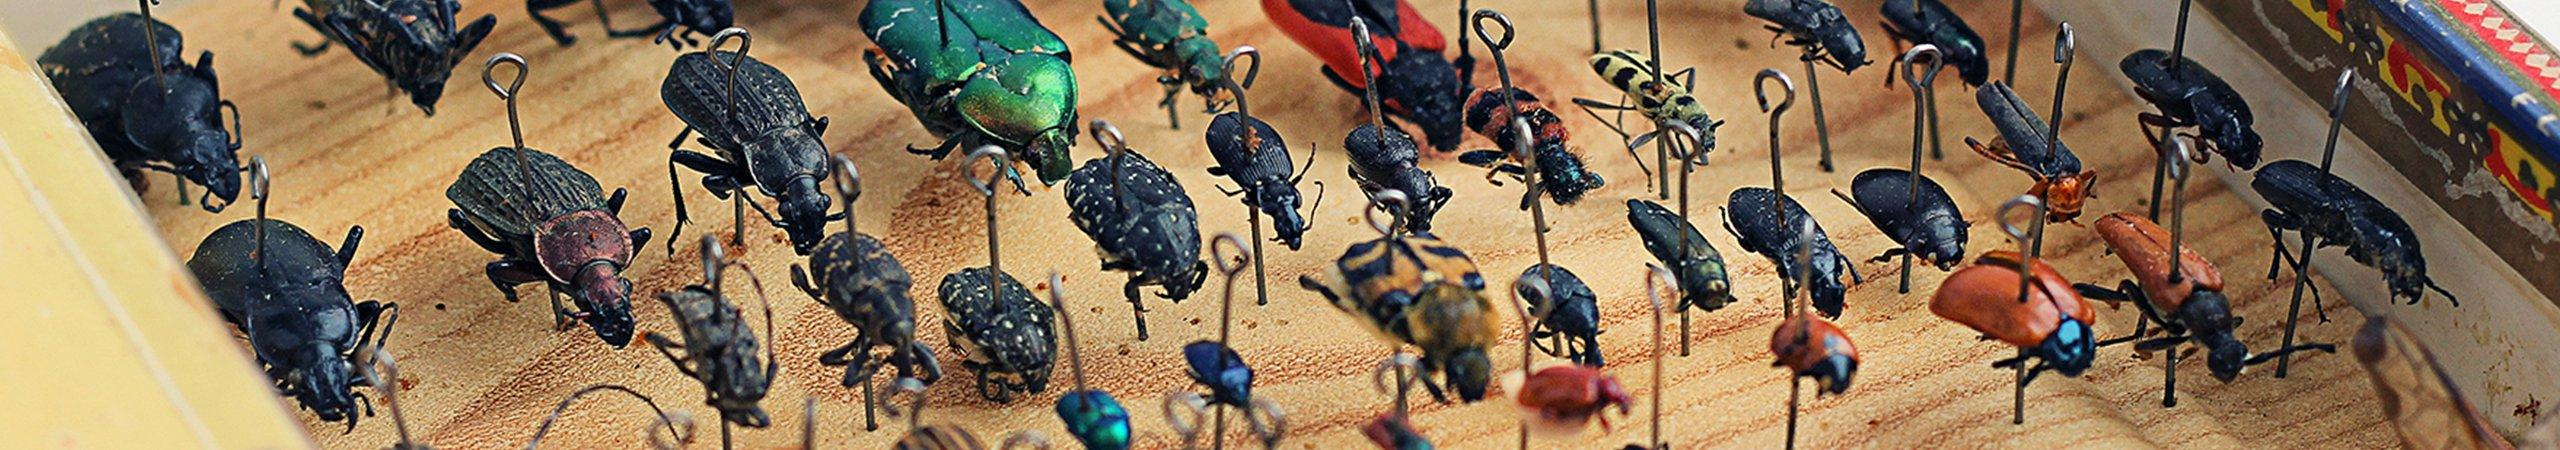 bugs on display